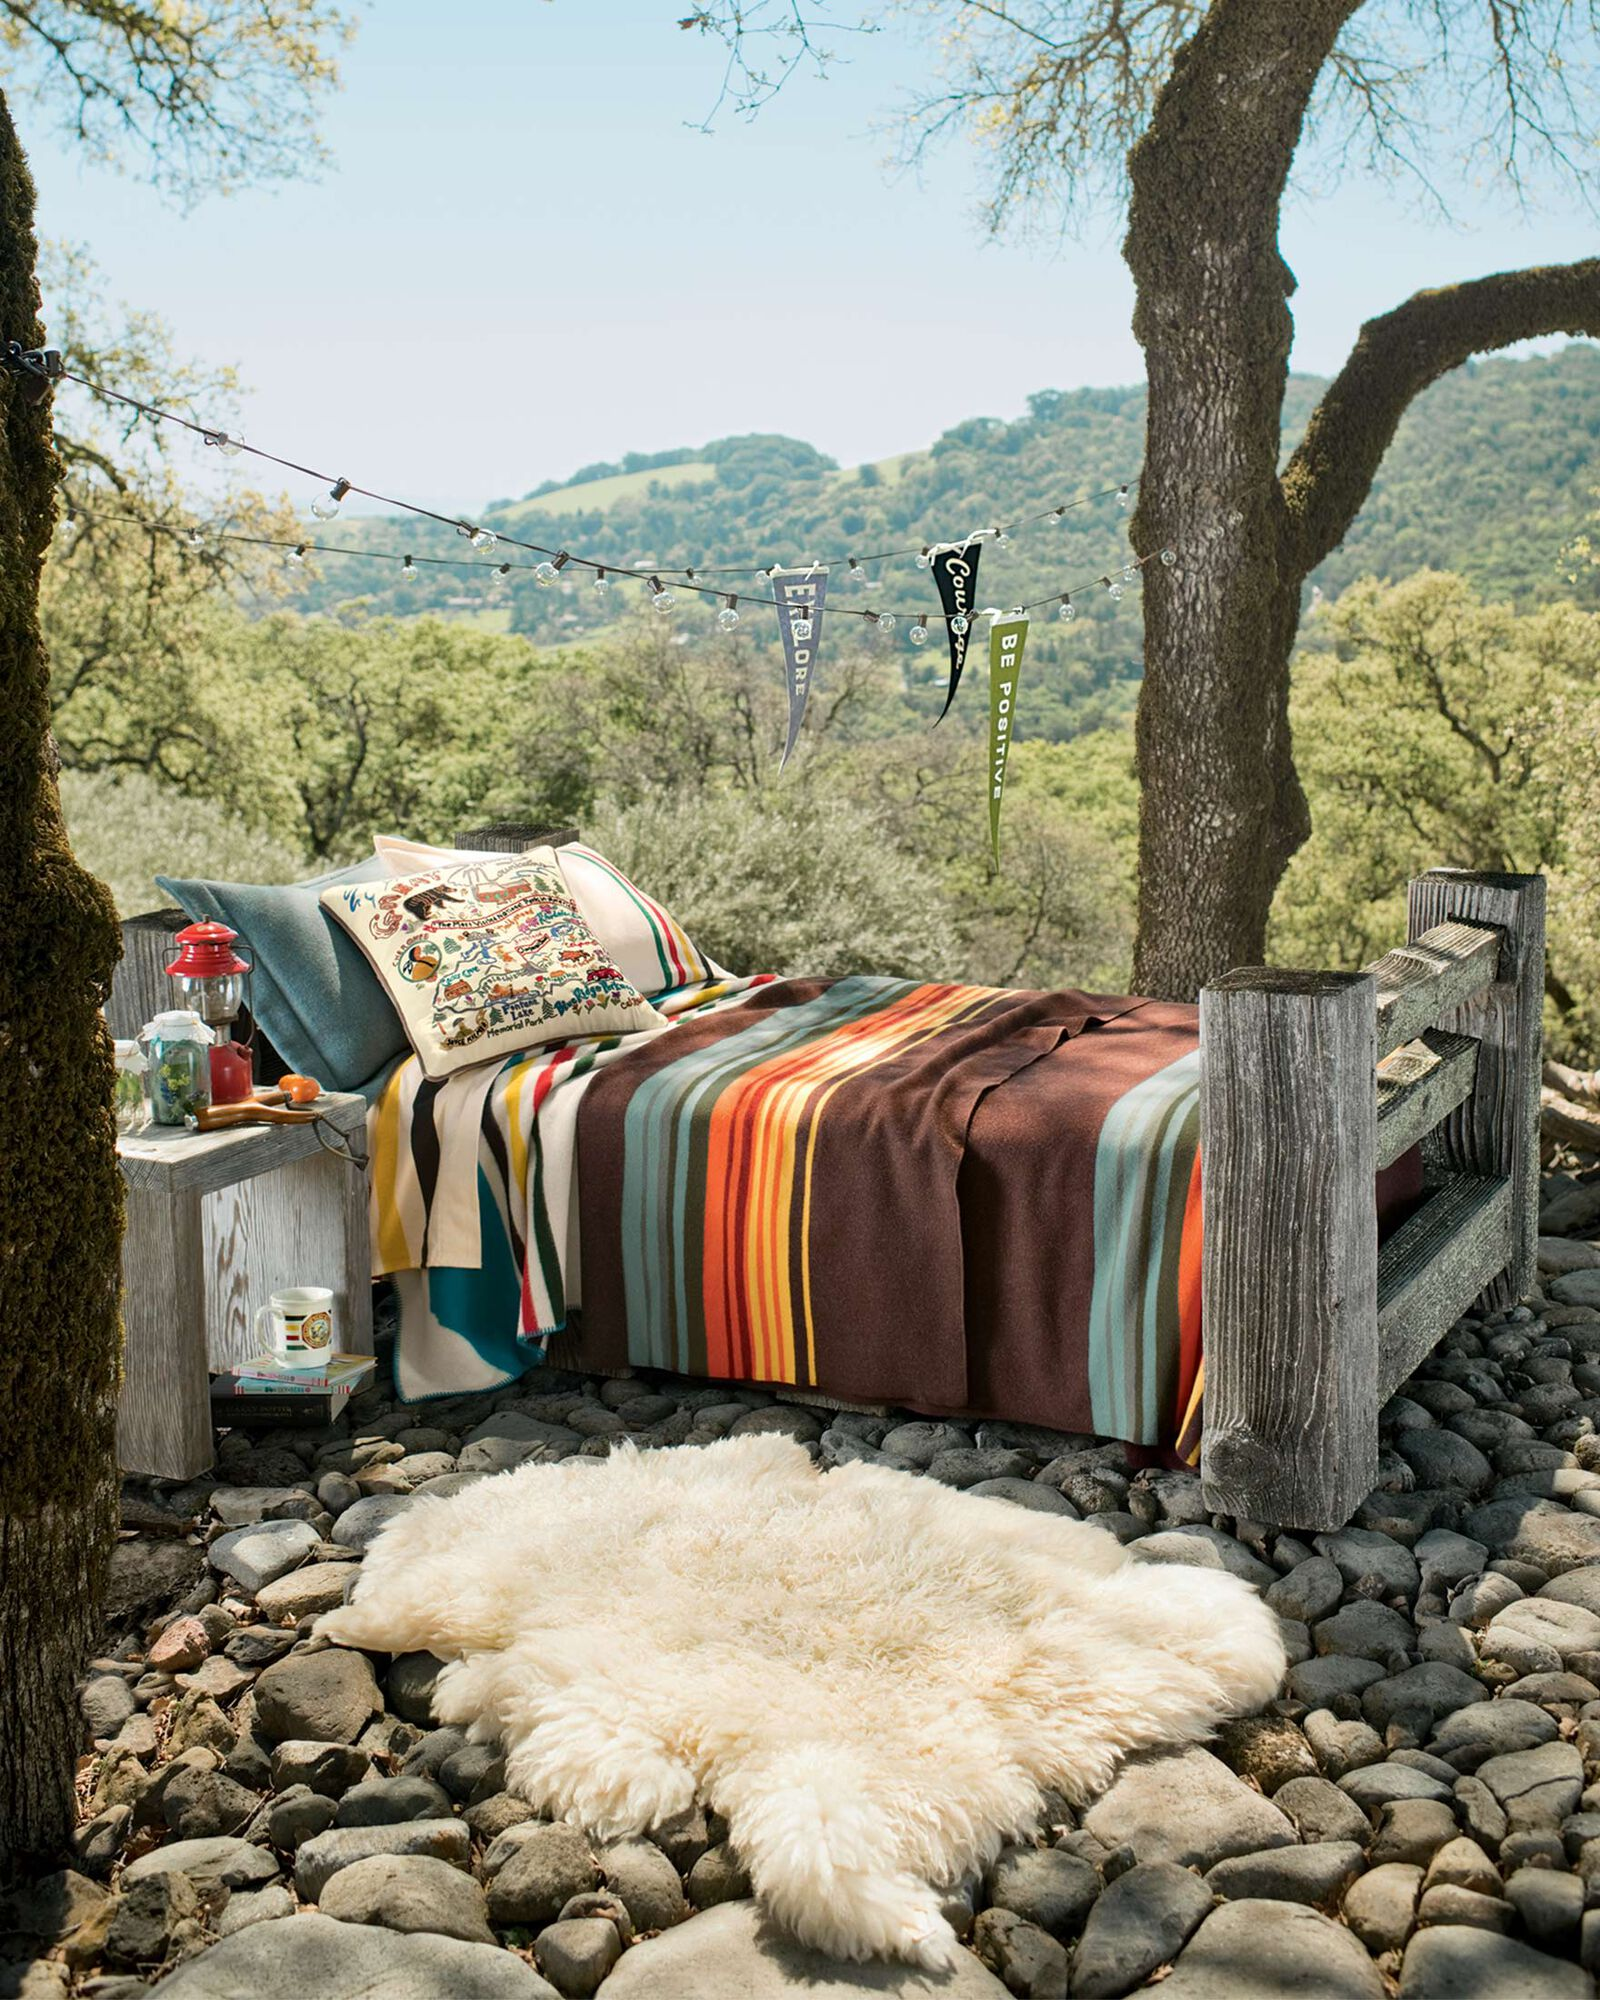 Smoky Mountains National Park Blanket Pendleton